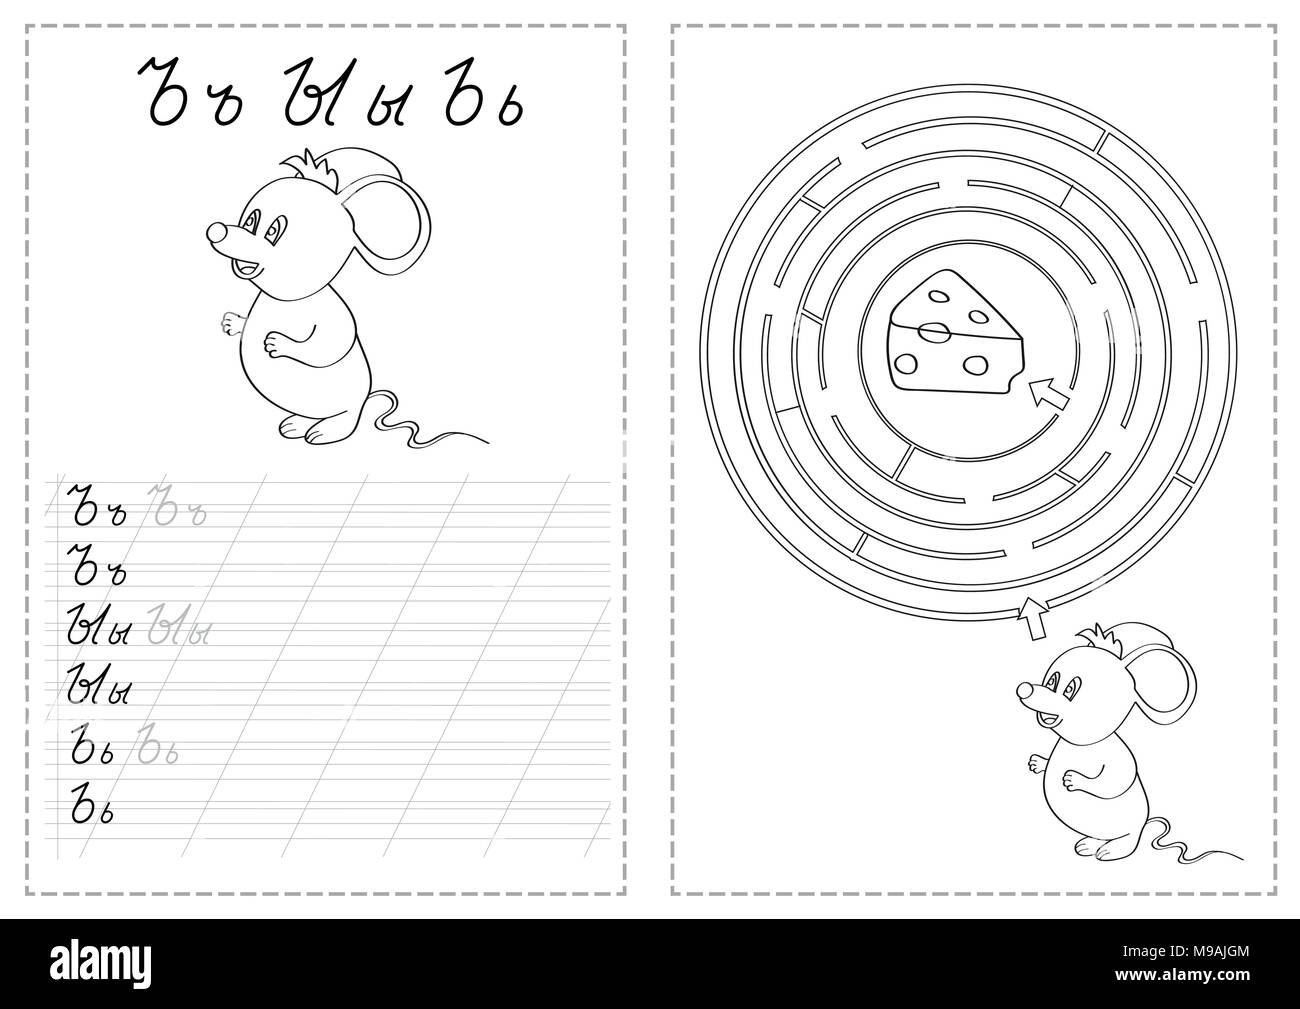 Infant School Stock Vector Images - Alamy